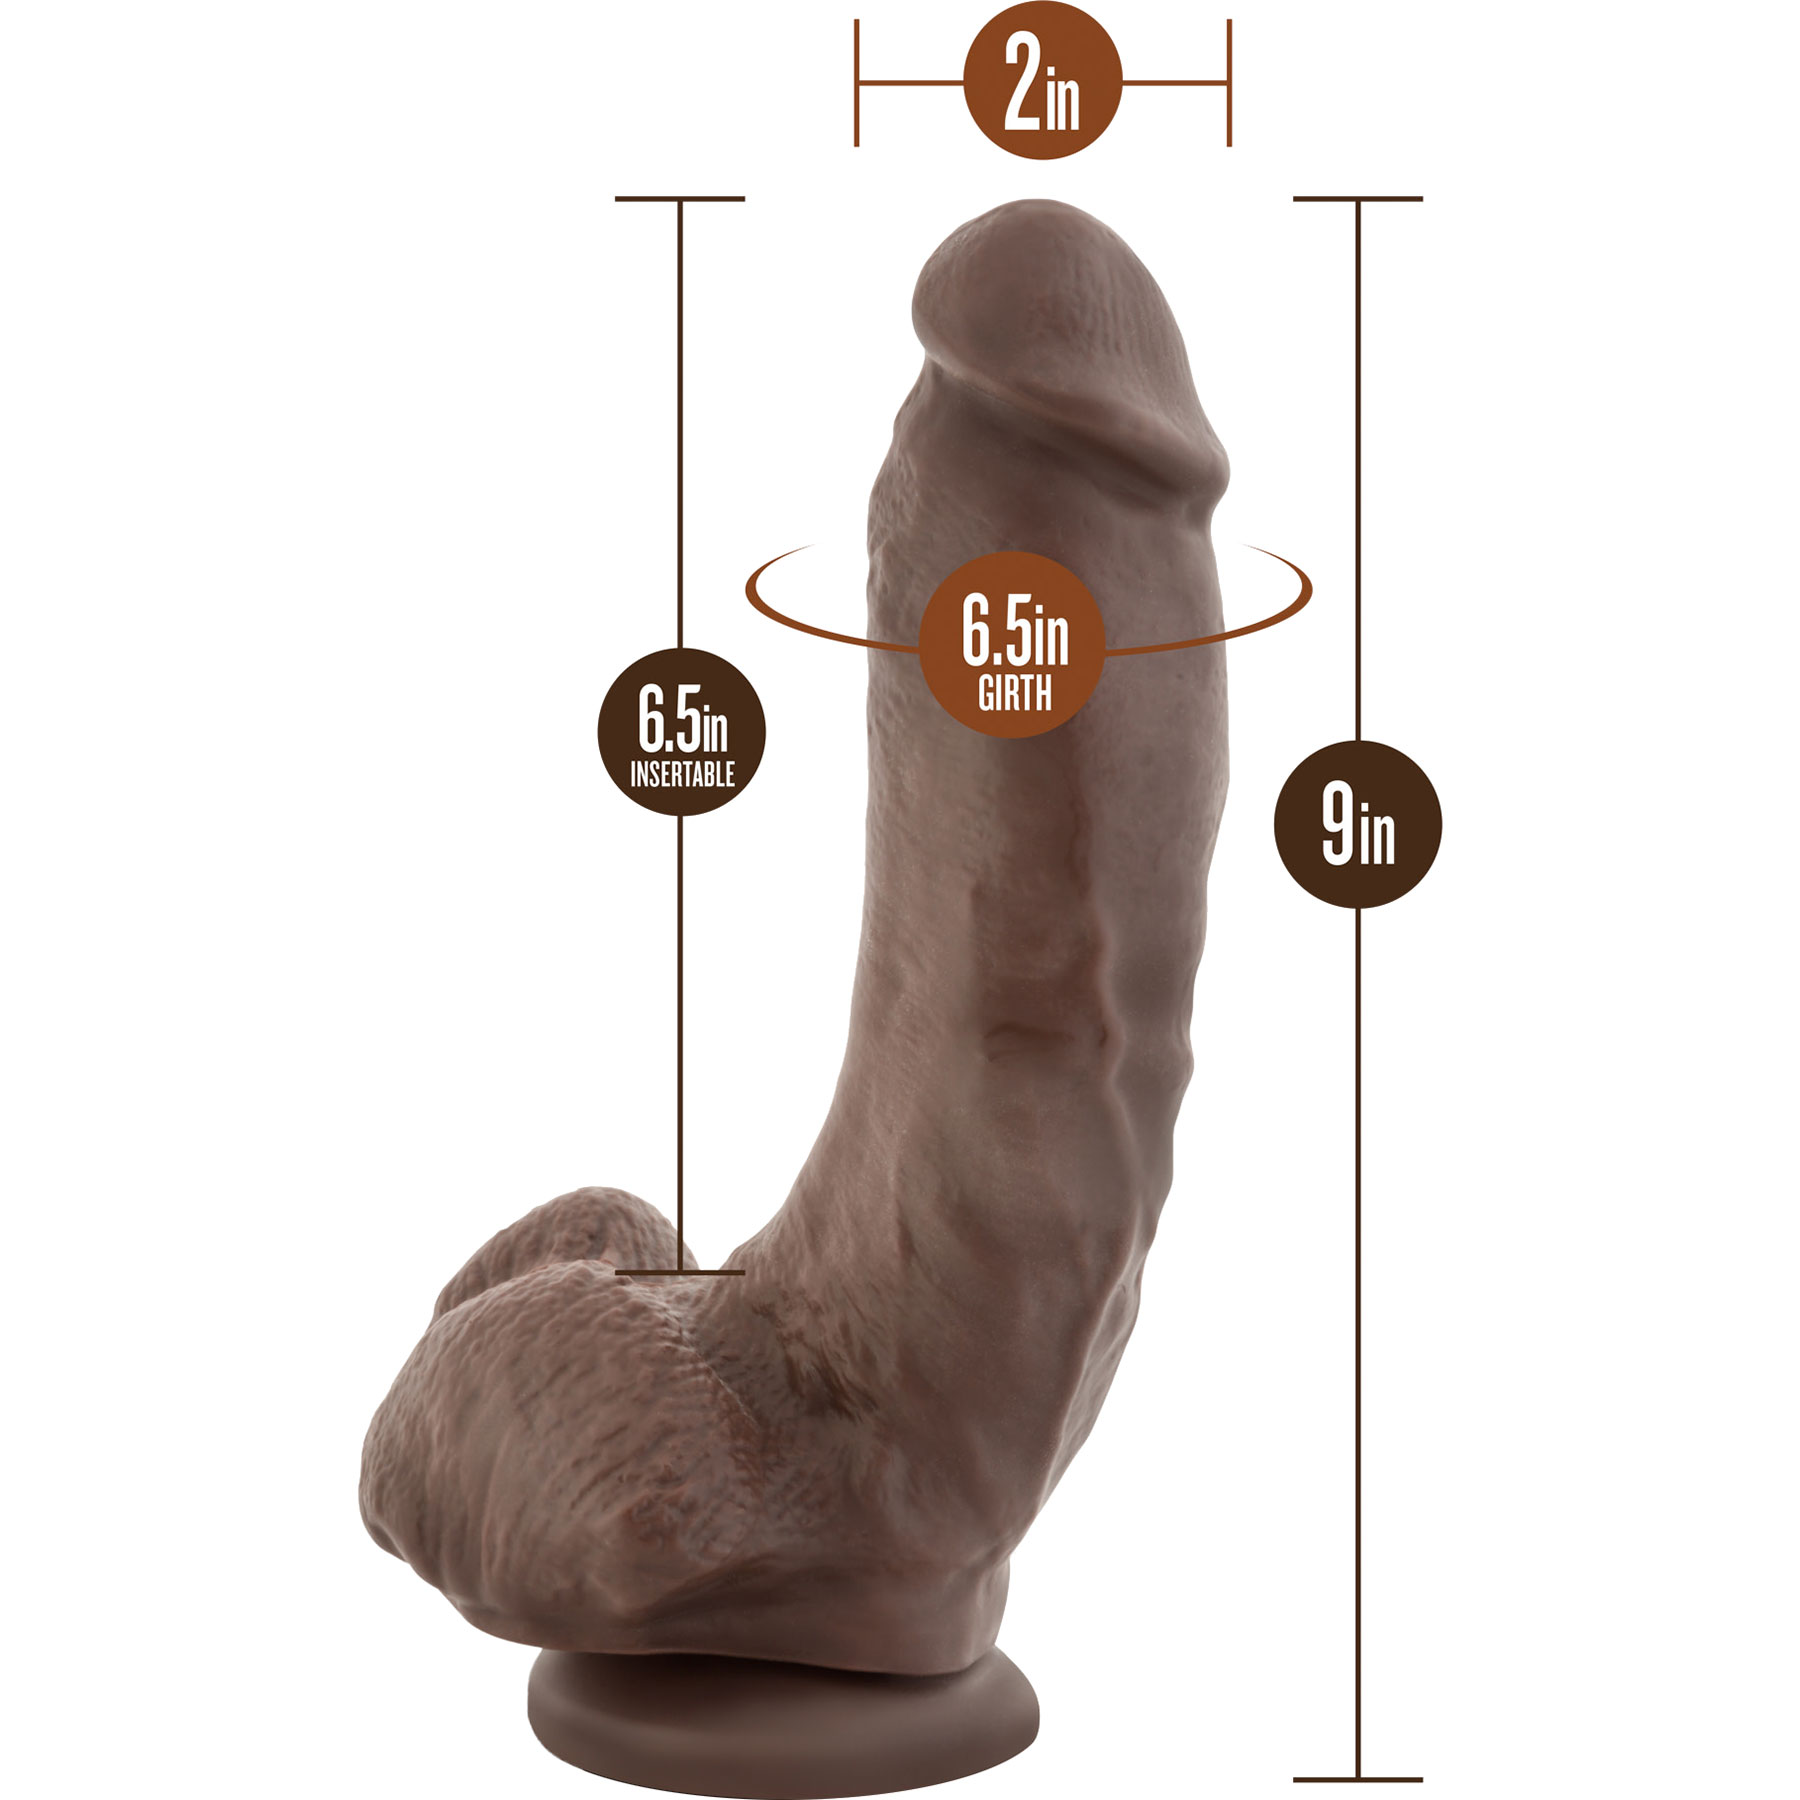 Dr. Skin Mr. Mayor Realistic Dildo With Balls & Suction Cup - Measurements